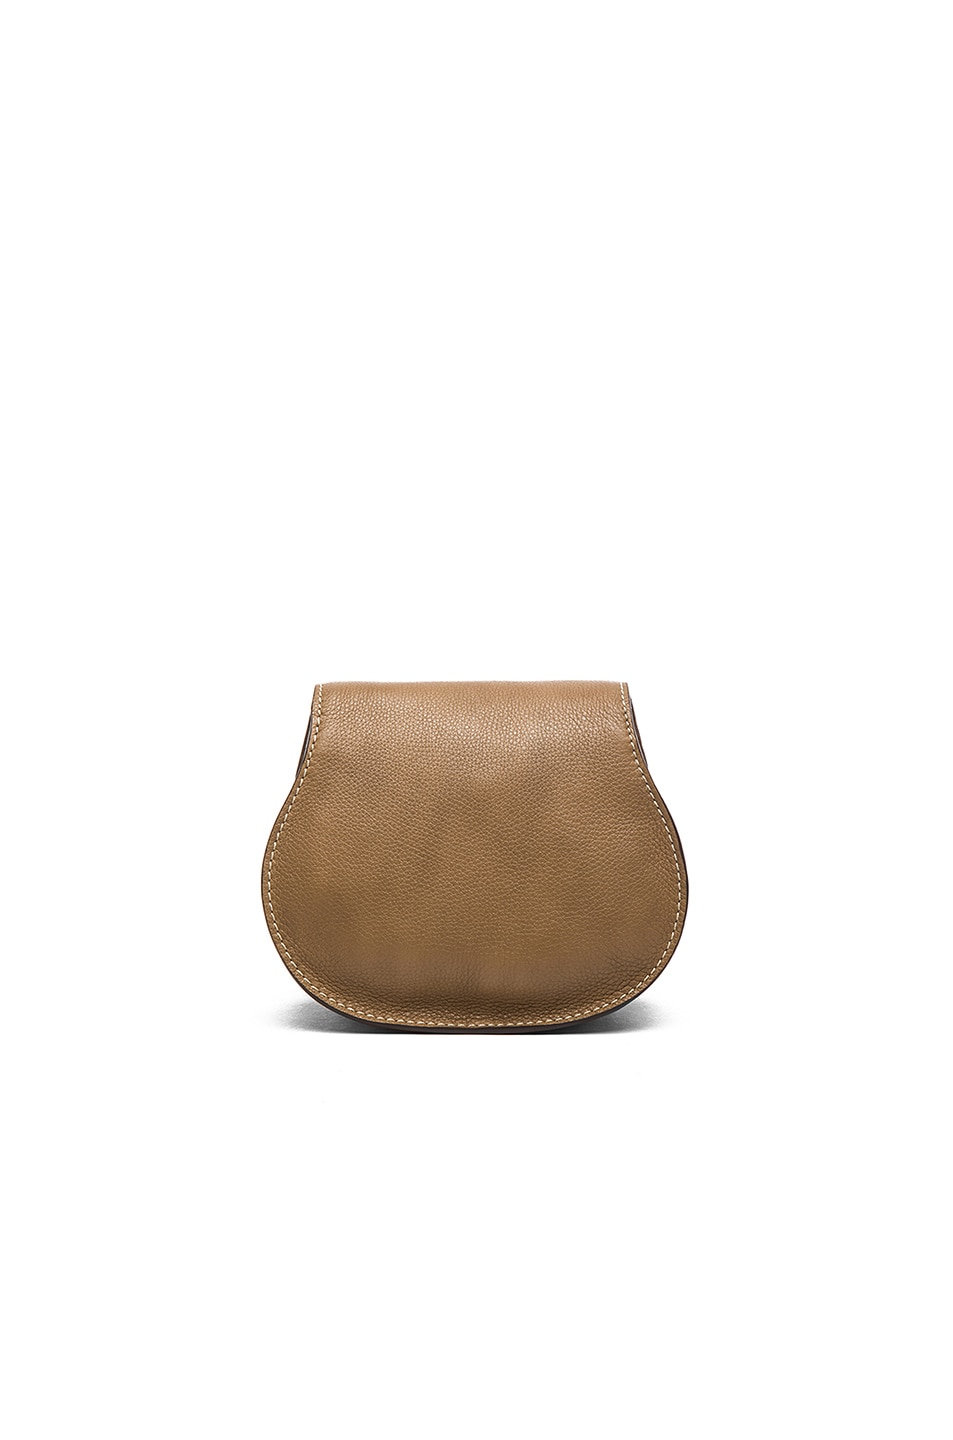 Image 2 of Chloe Small Marcie Saddle Bag in Nut